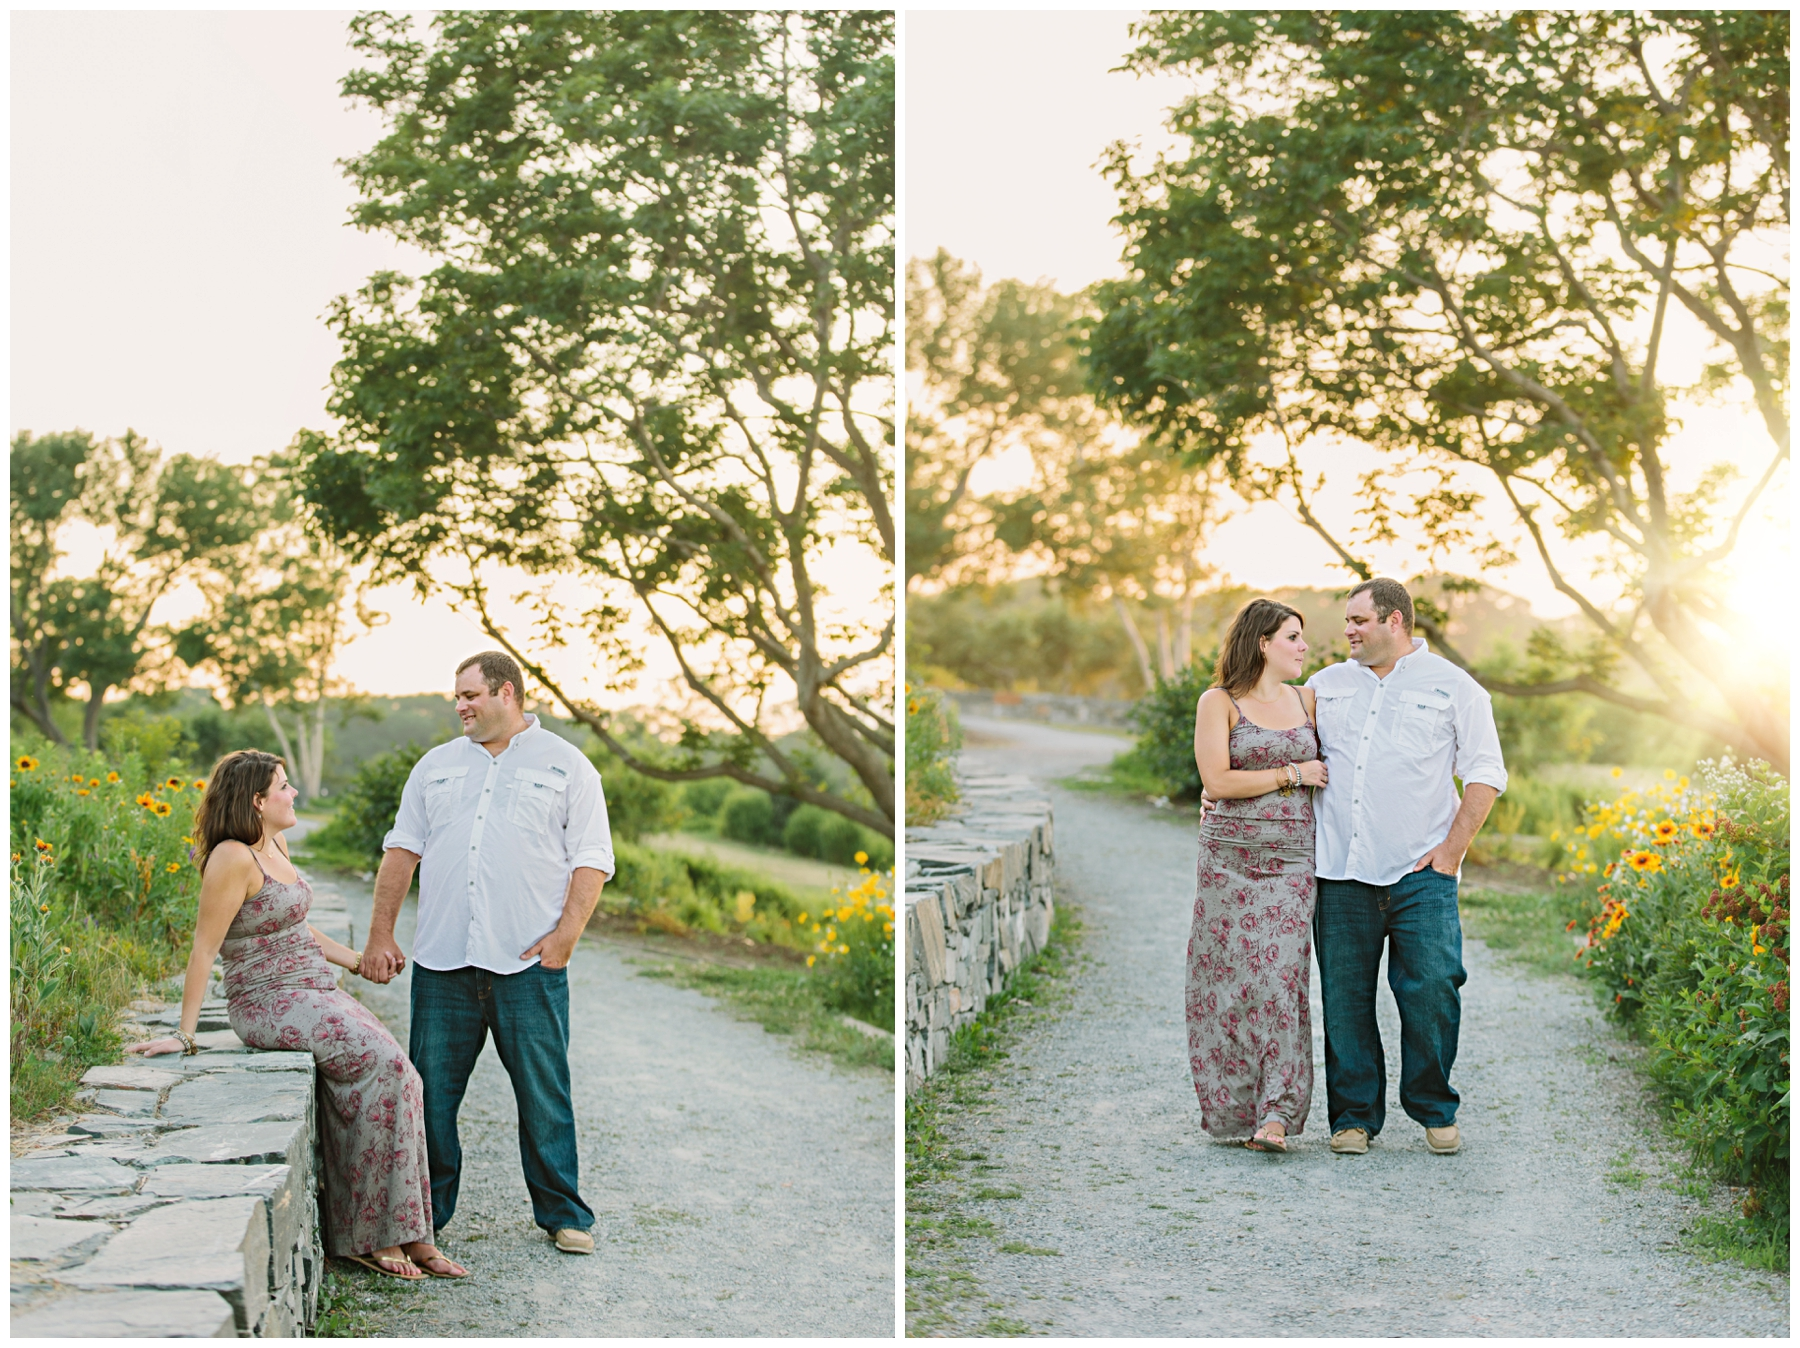 Maine_Photographer_Engagements_FortWilliams_PortlandHeadLight_lighthouse_coastal_seaside-016